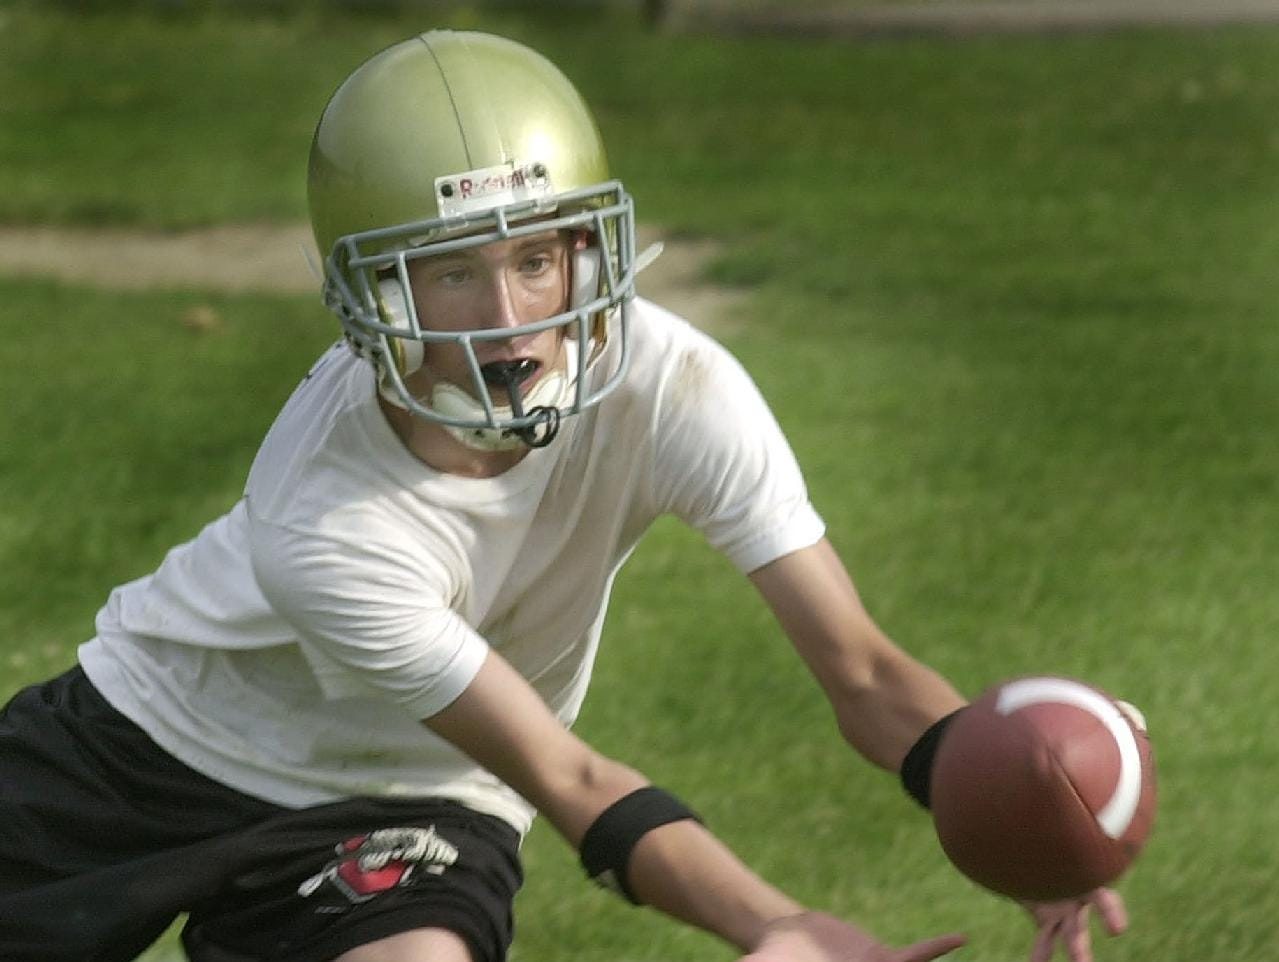 In 2000, Vestal High School receiver and defensive back Conor Talbut watches the football reach his hands during opening day drills.